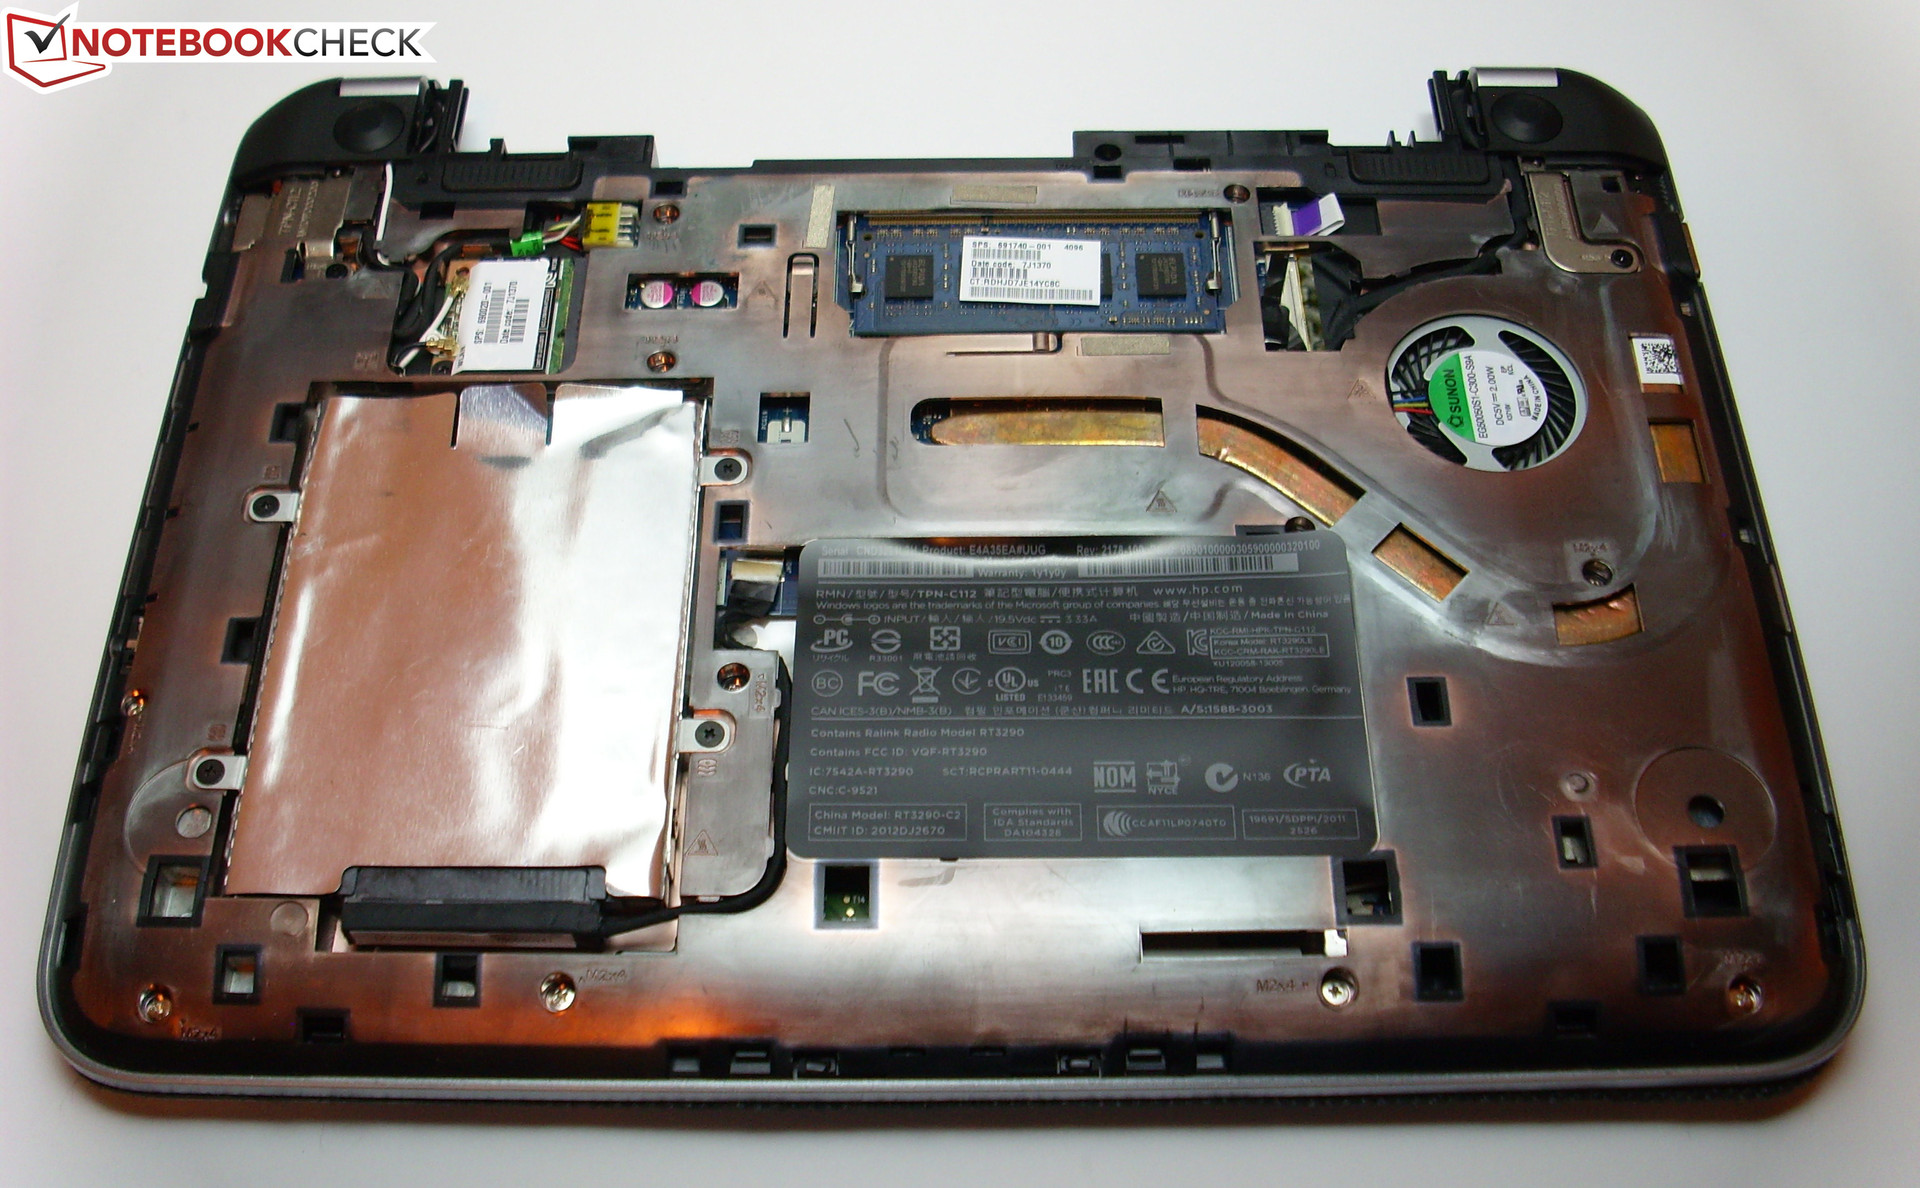 Inside the TouchSmart 11